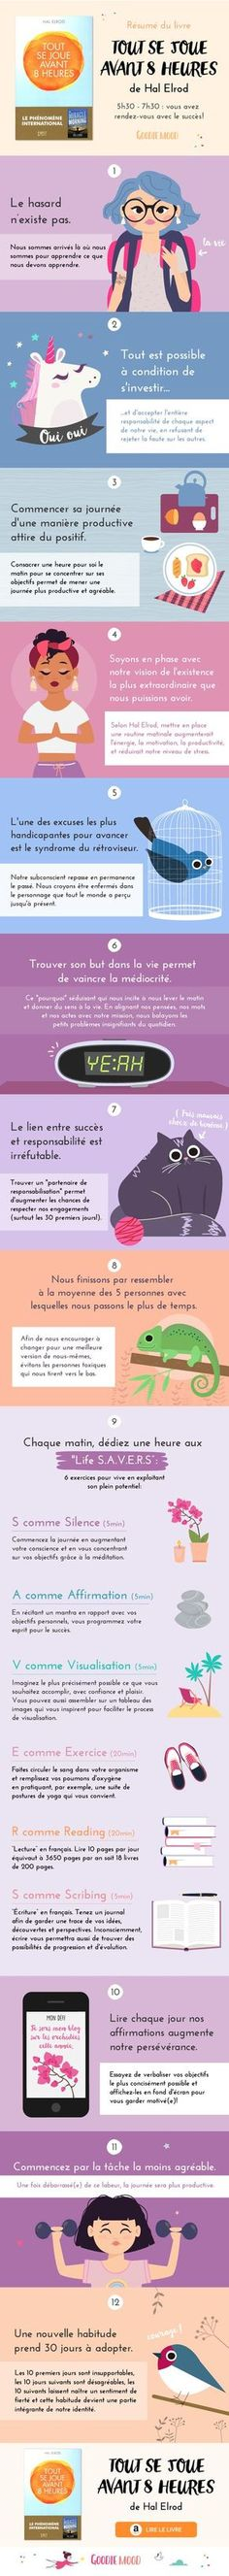 Psychology infographic and charts miracle morning tout se joue avant 8 heures resume du livre Infographic Description miracle morning tout se joue avant 8 Positive Mind, Positive Attitude, Quotes Positive, Vie Positive, Material Didático, Reiki Healer, Miracle Morning, Daily Meditation, Learning To Be